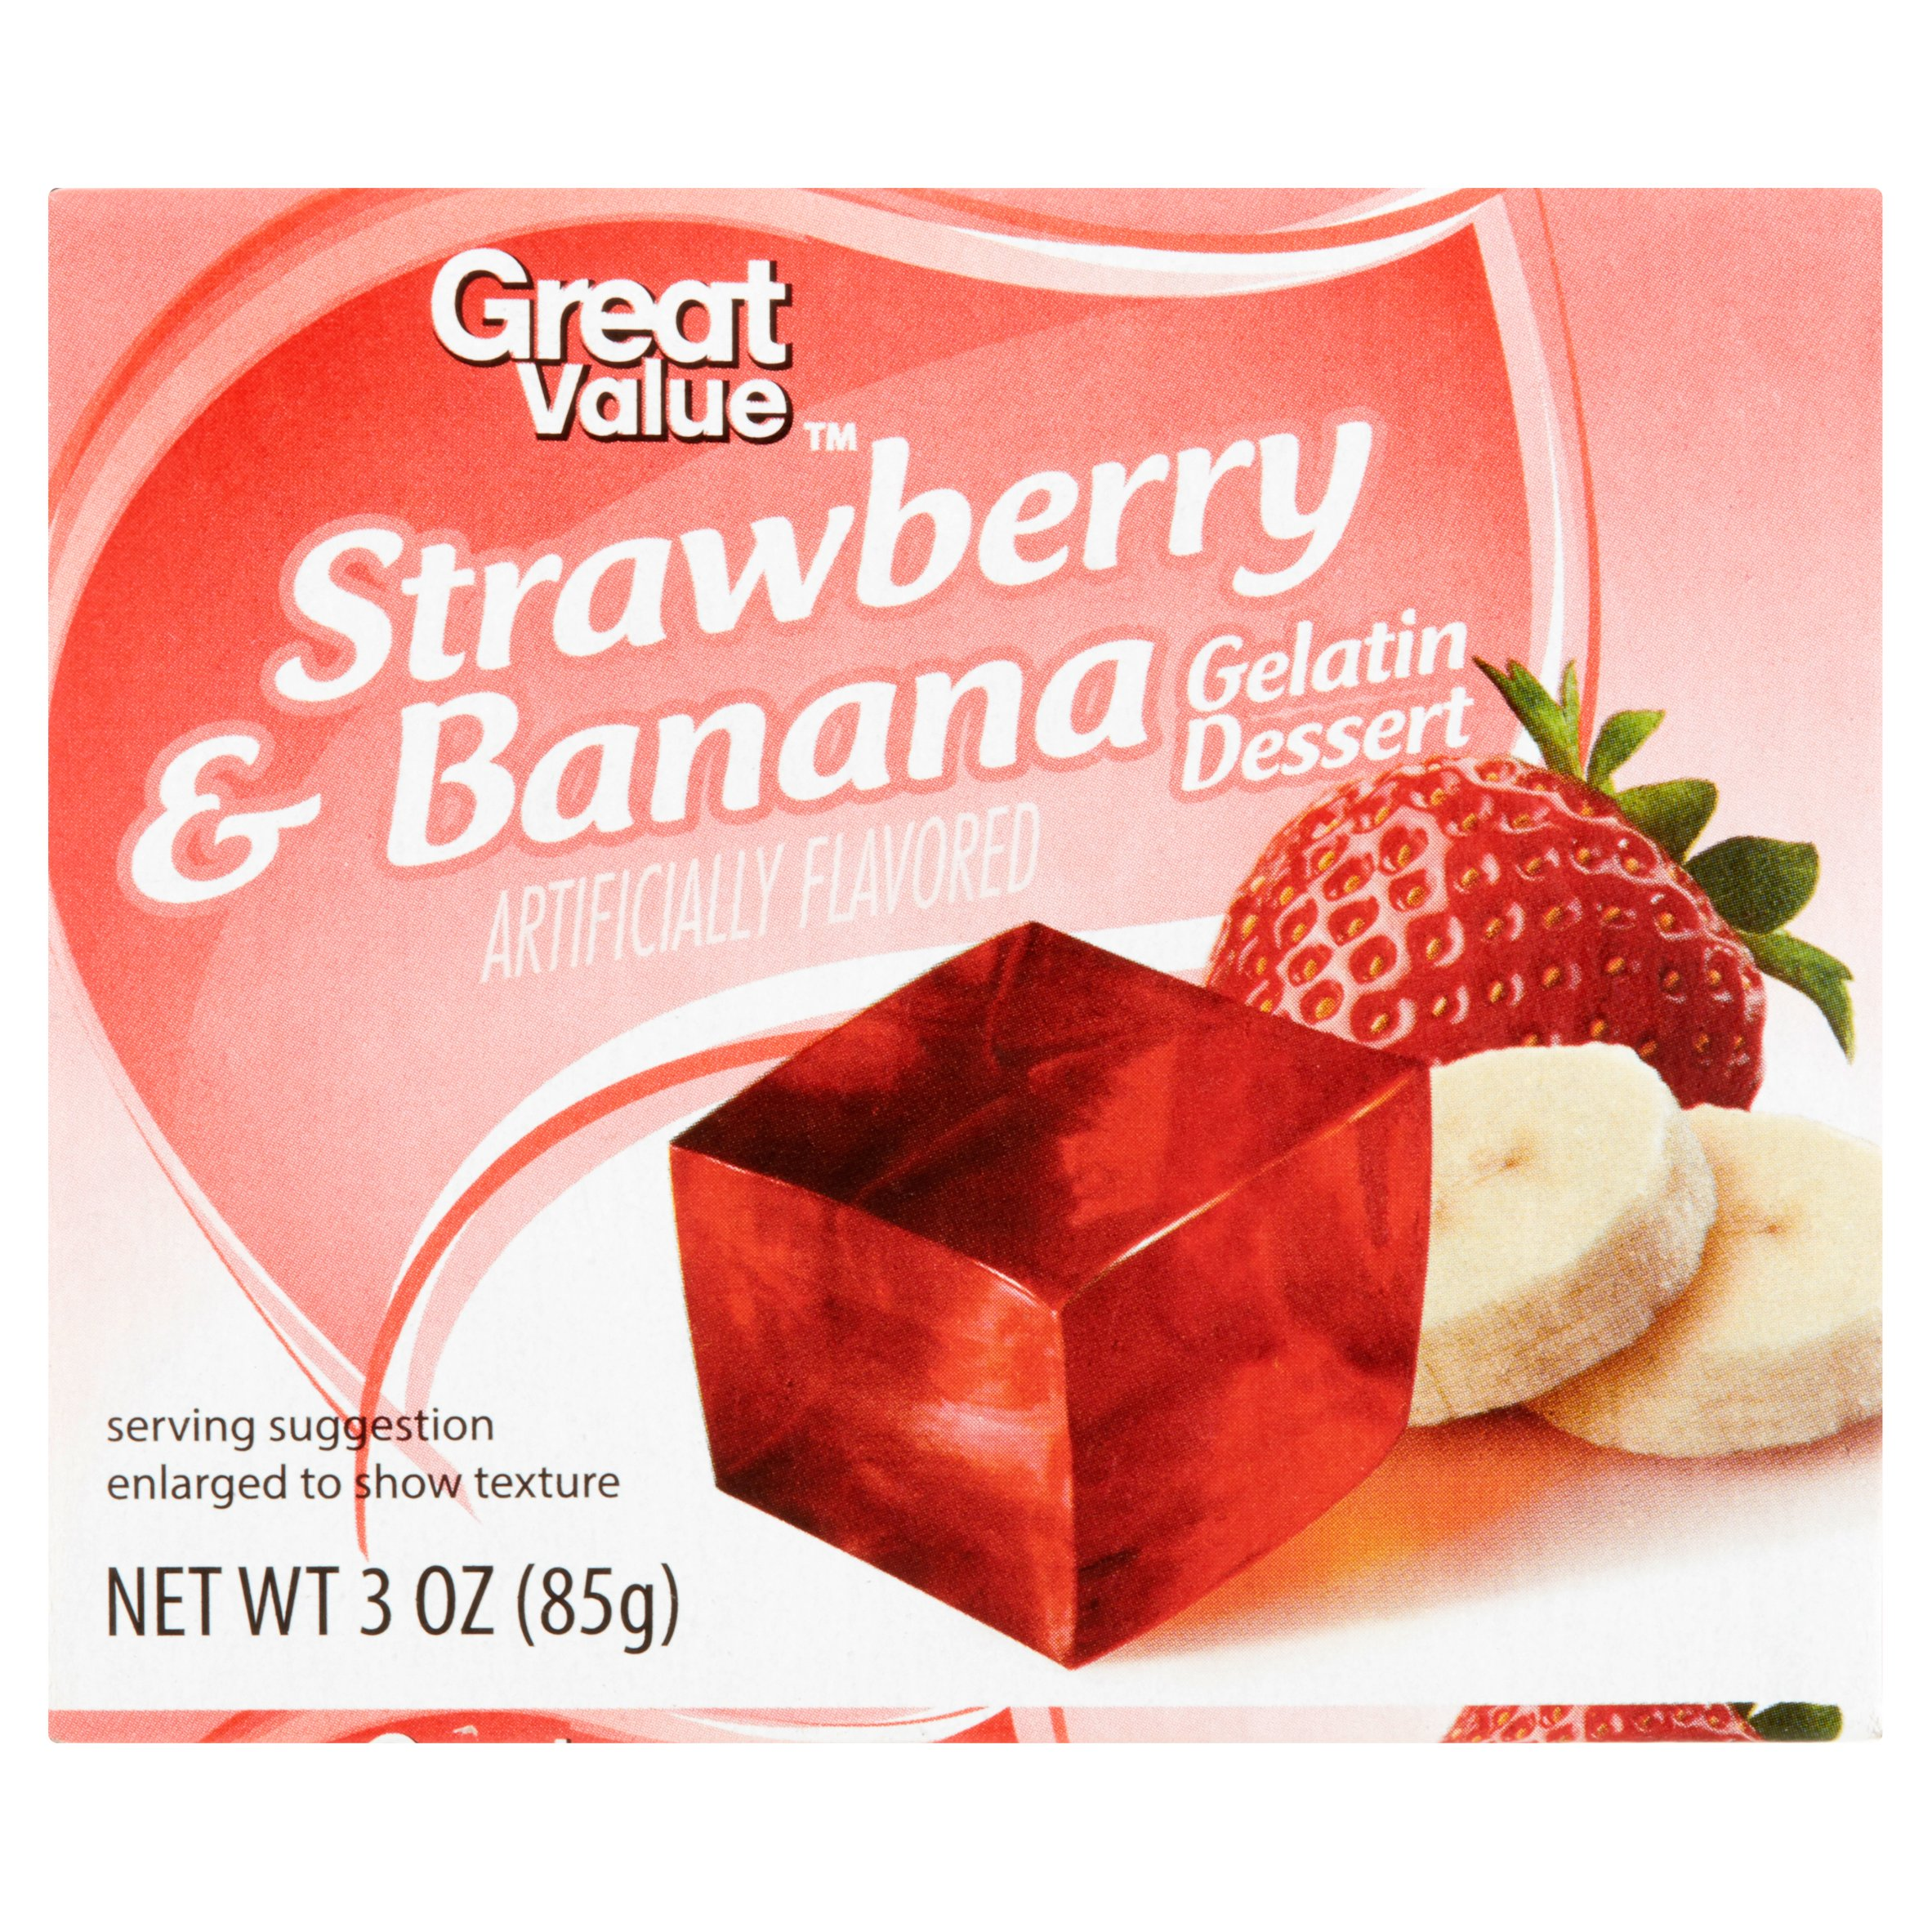 Great Value Strawberry Banana Gelatin Dessert, 3 oz by Wal-Mart Stores, Inc.